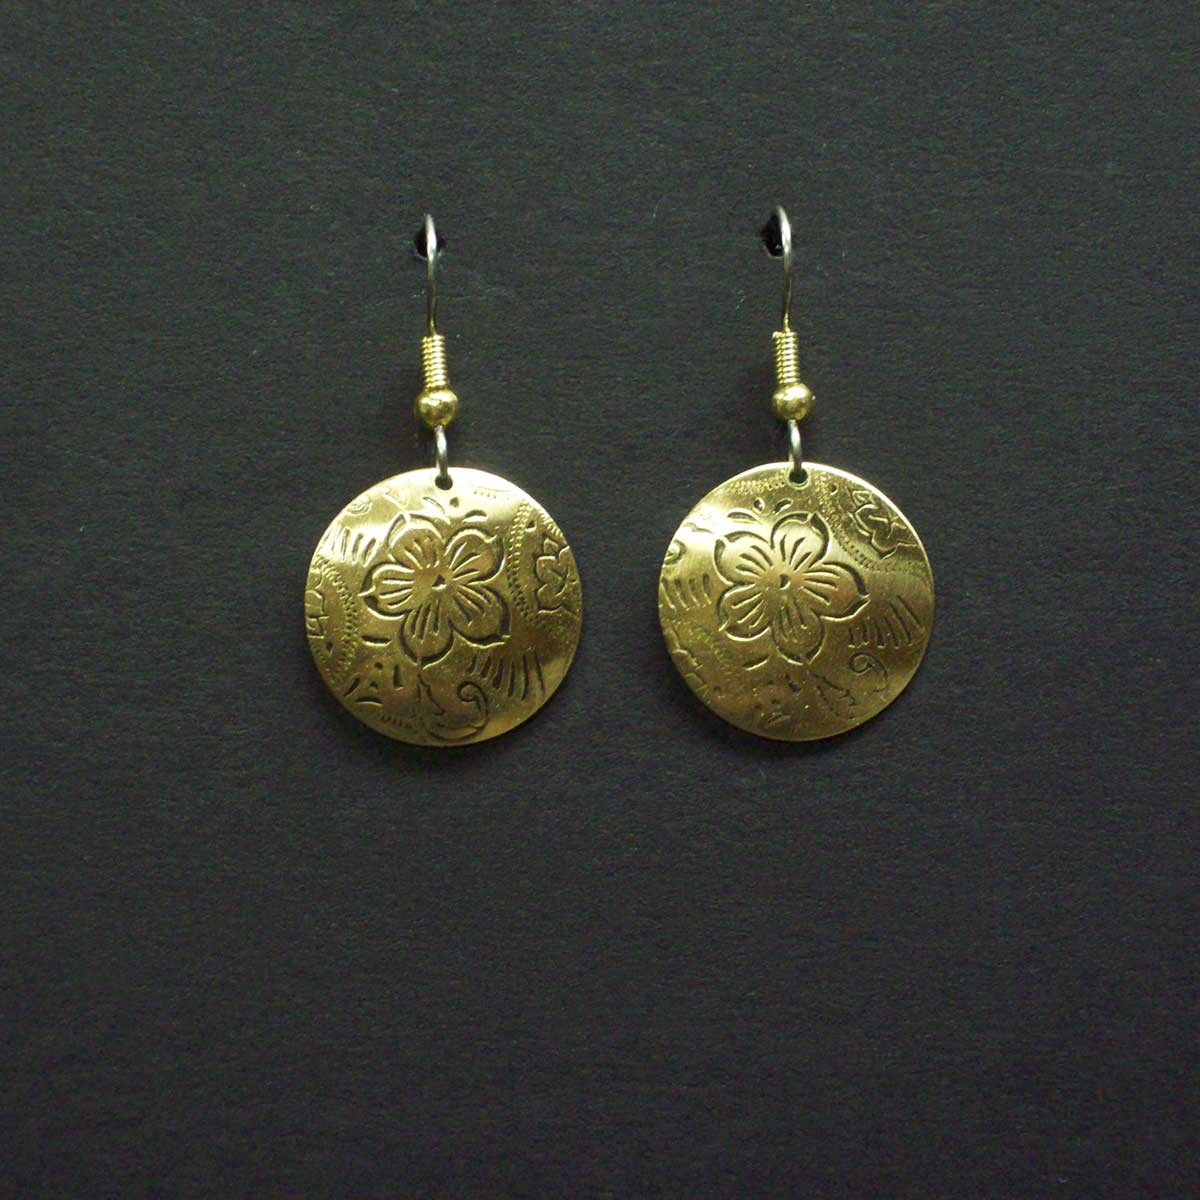 Small Engraved Oval Post Earrings